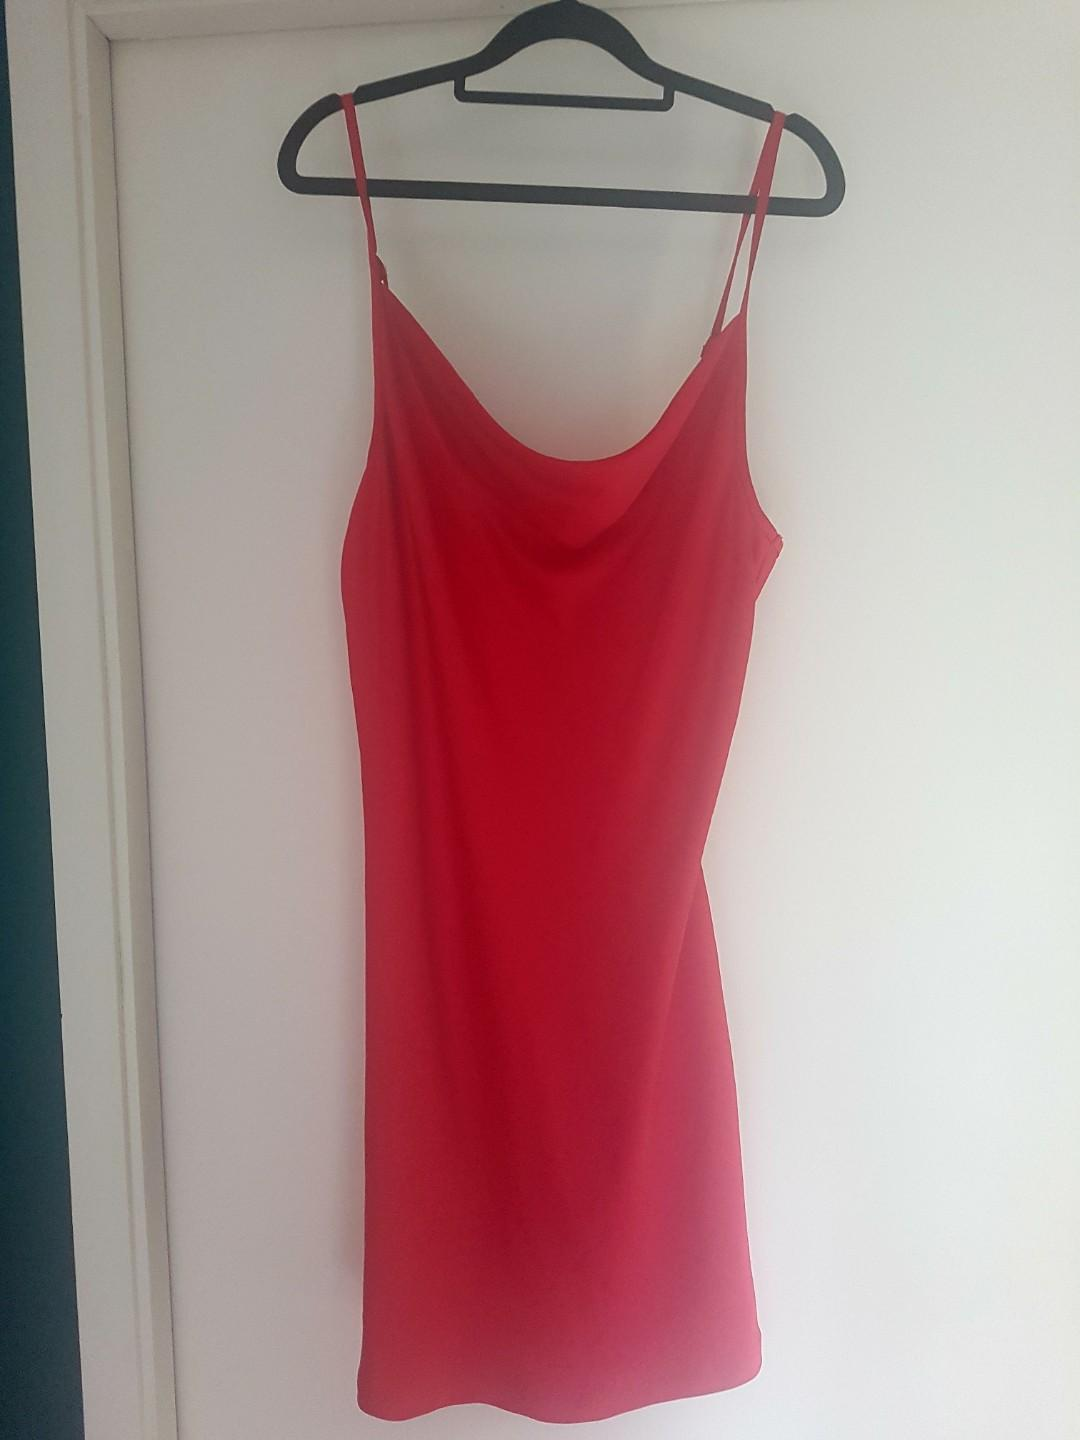 2× Dotti Satin cowl neck middy dress (red and black)